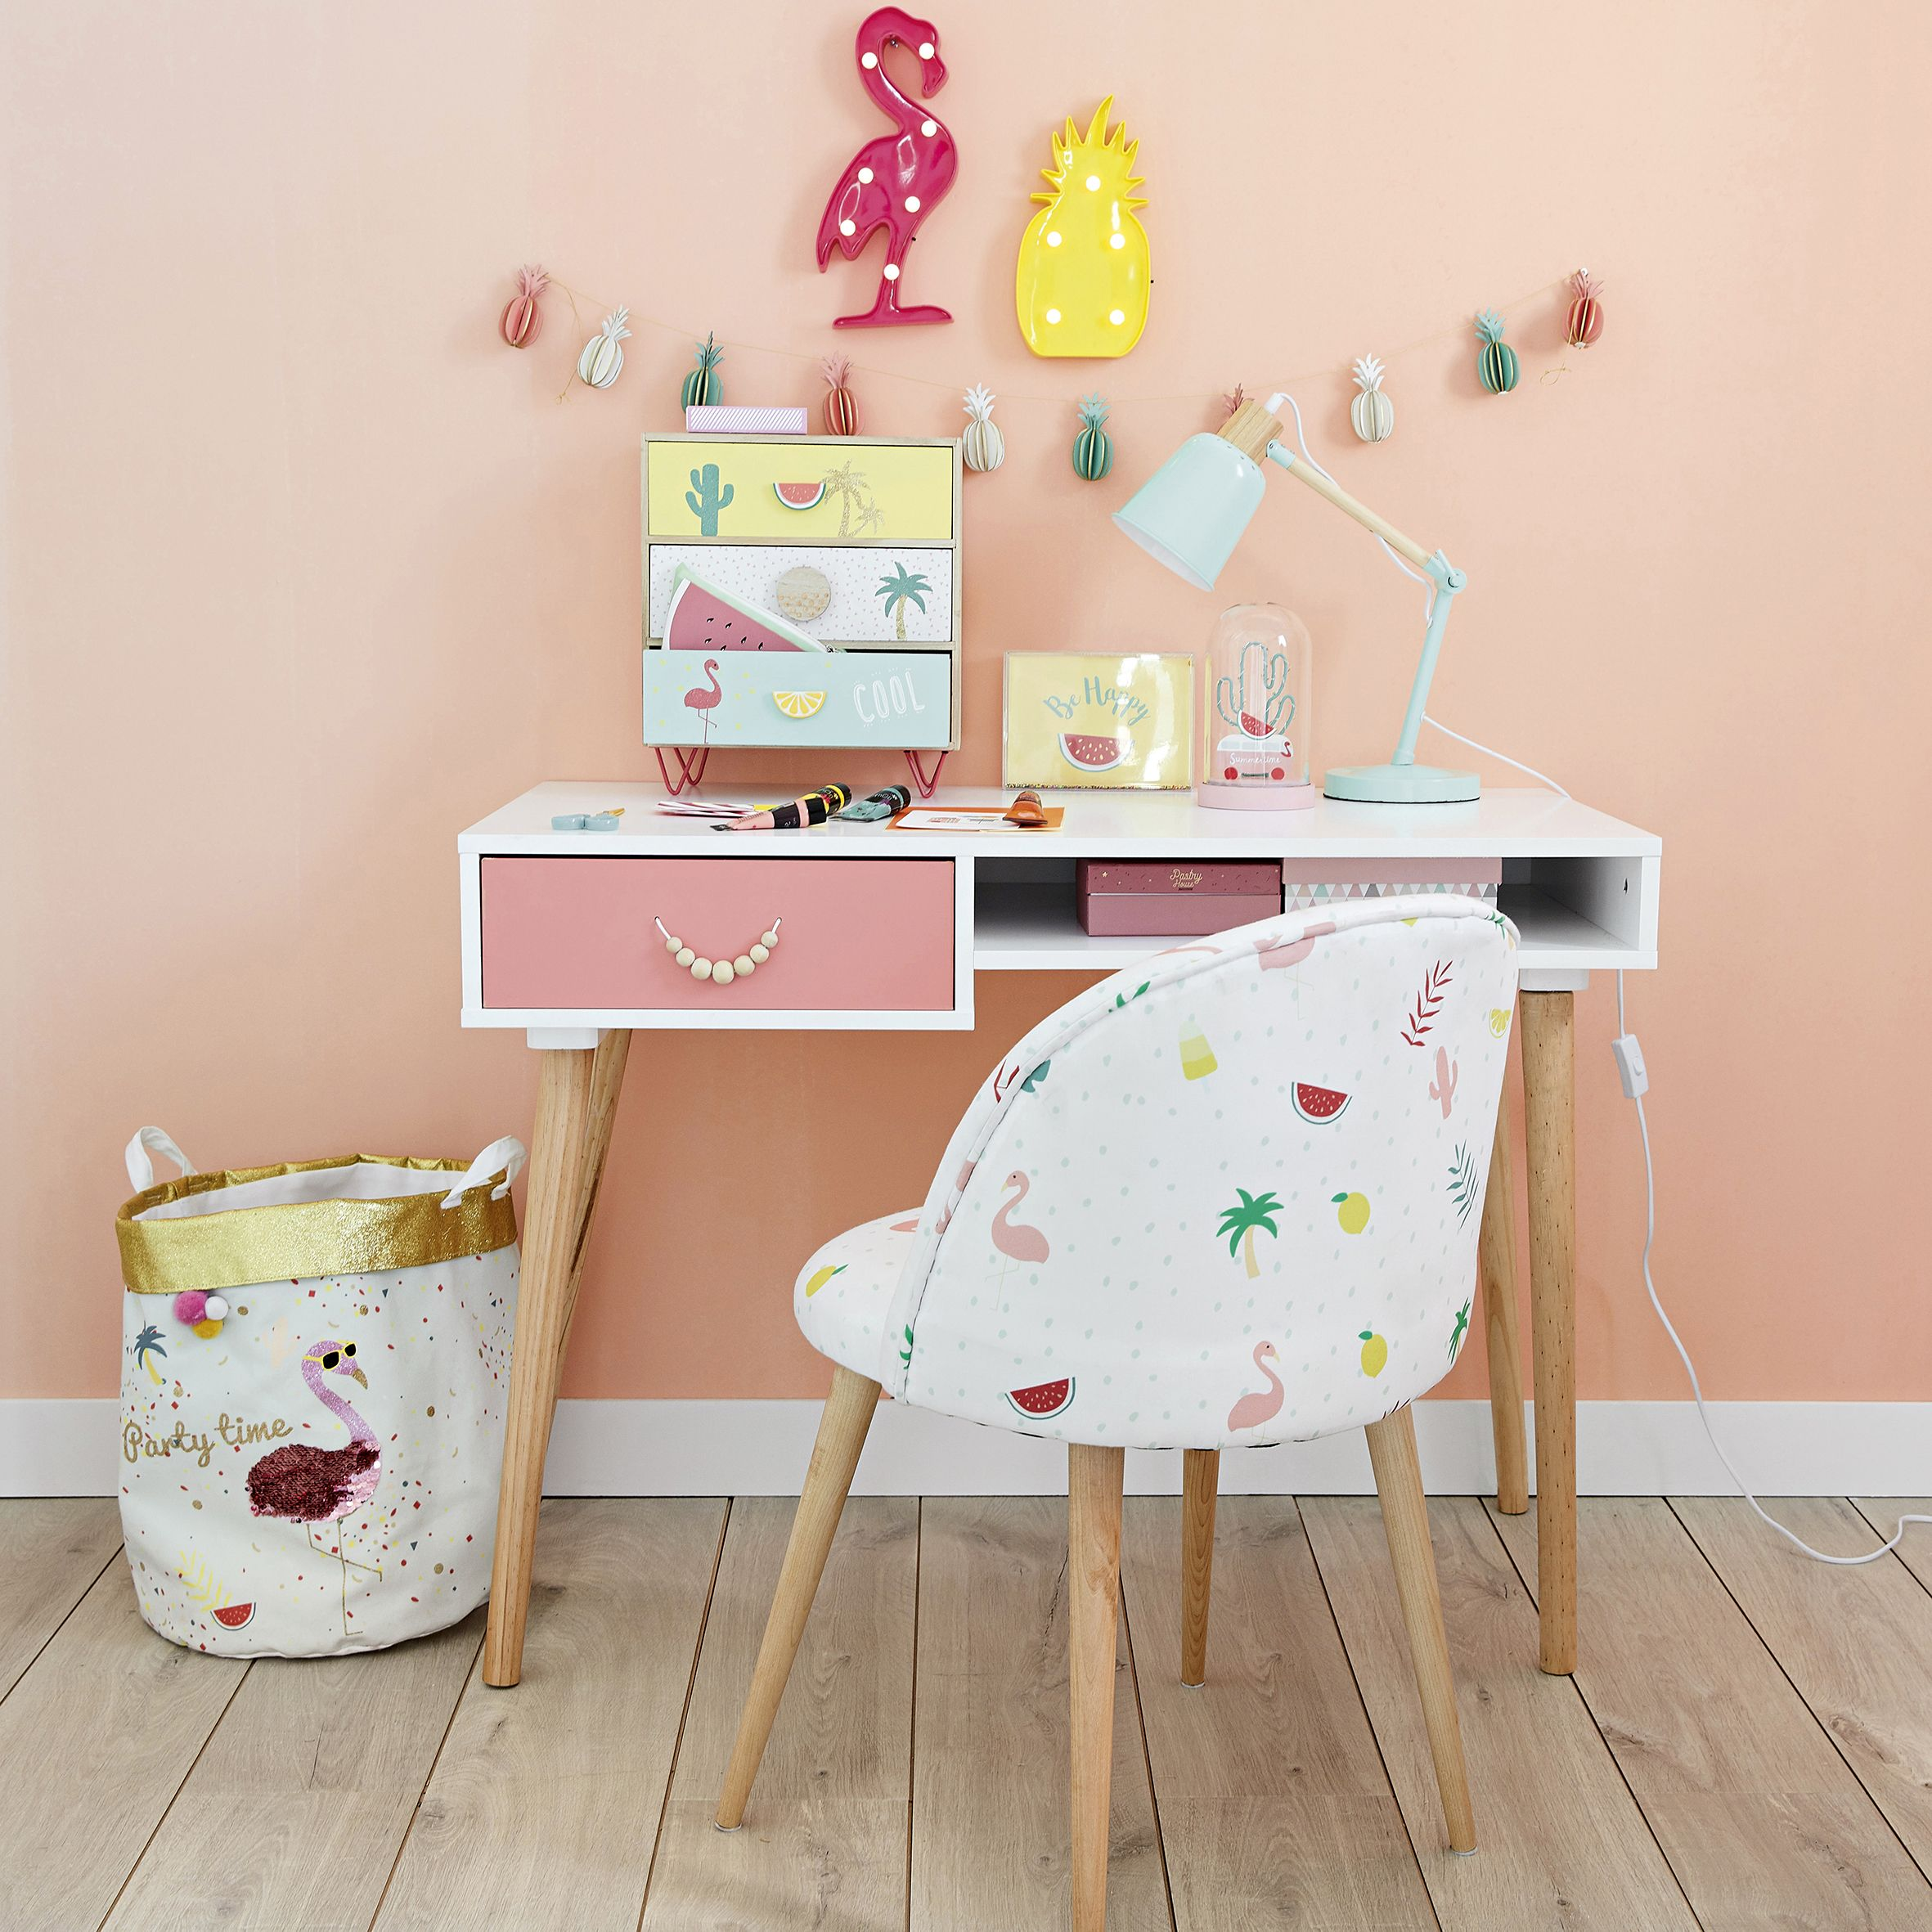 Coin Bureau Amusant Pour Ado Fille Ou Enfant Theme Tropical Tropicool Flamant Rose Ananas Et Pasteque Sur Un Mur De Couleur Rose Cool Kids Bedrooms Decor Desk